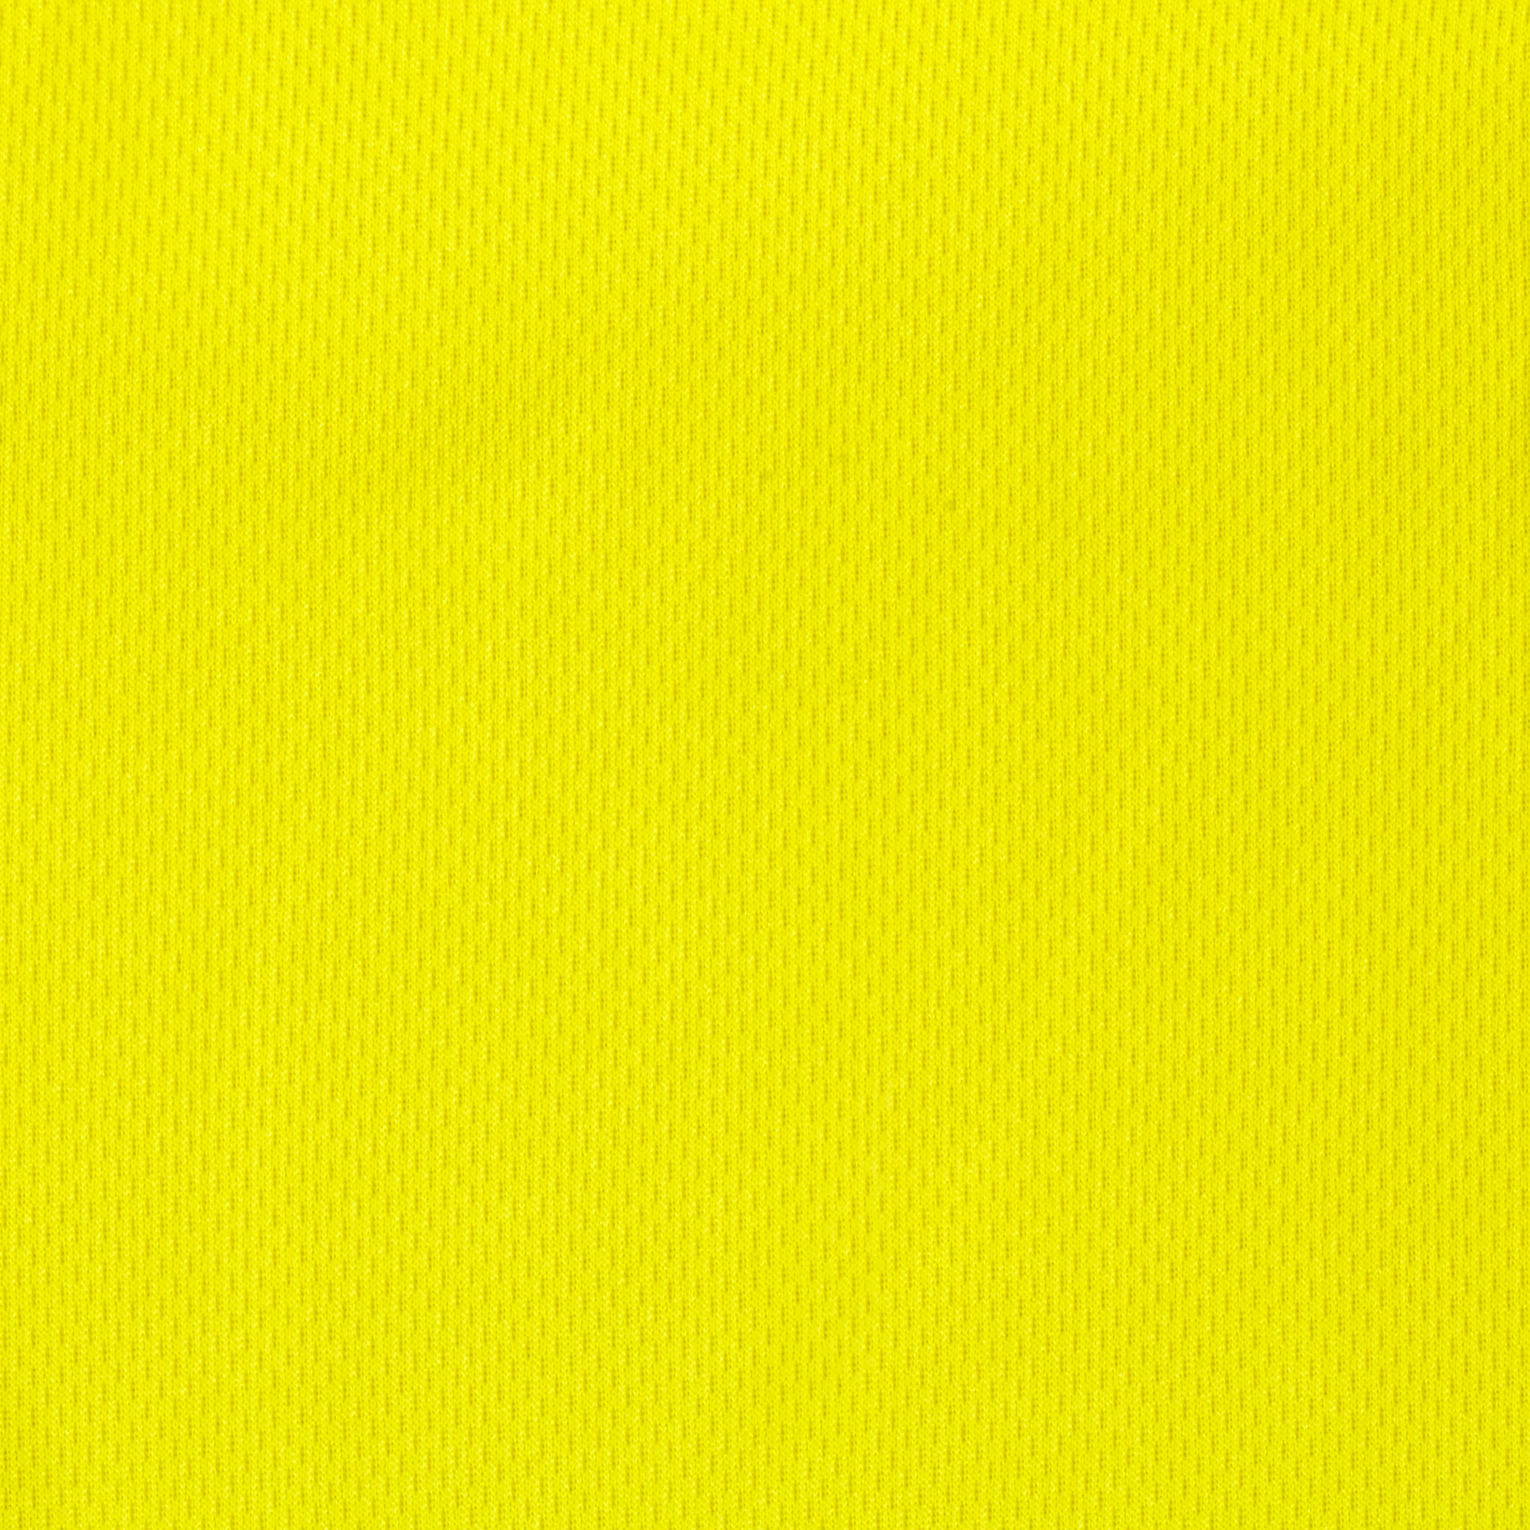 Athletic Mesh Knit Yellow Fabric 0454519